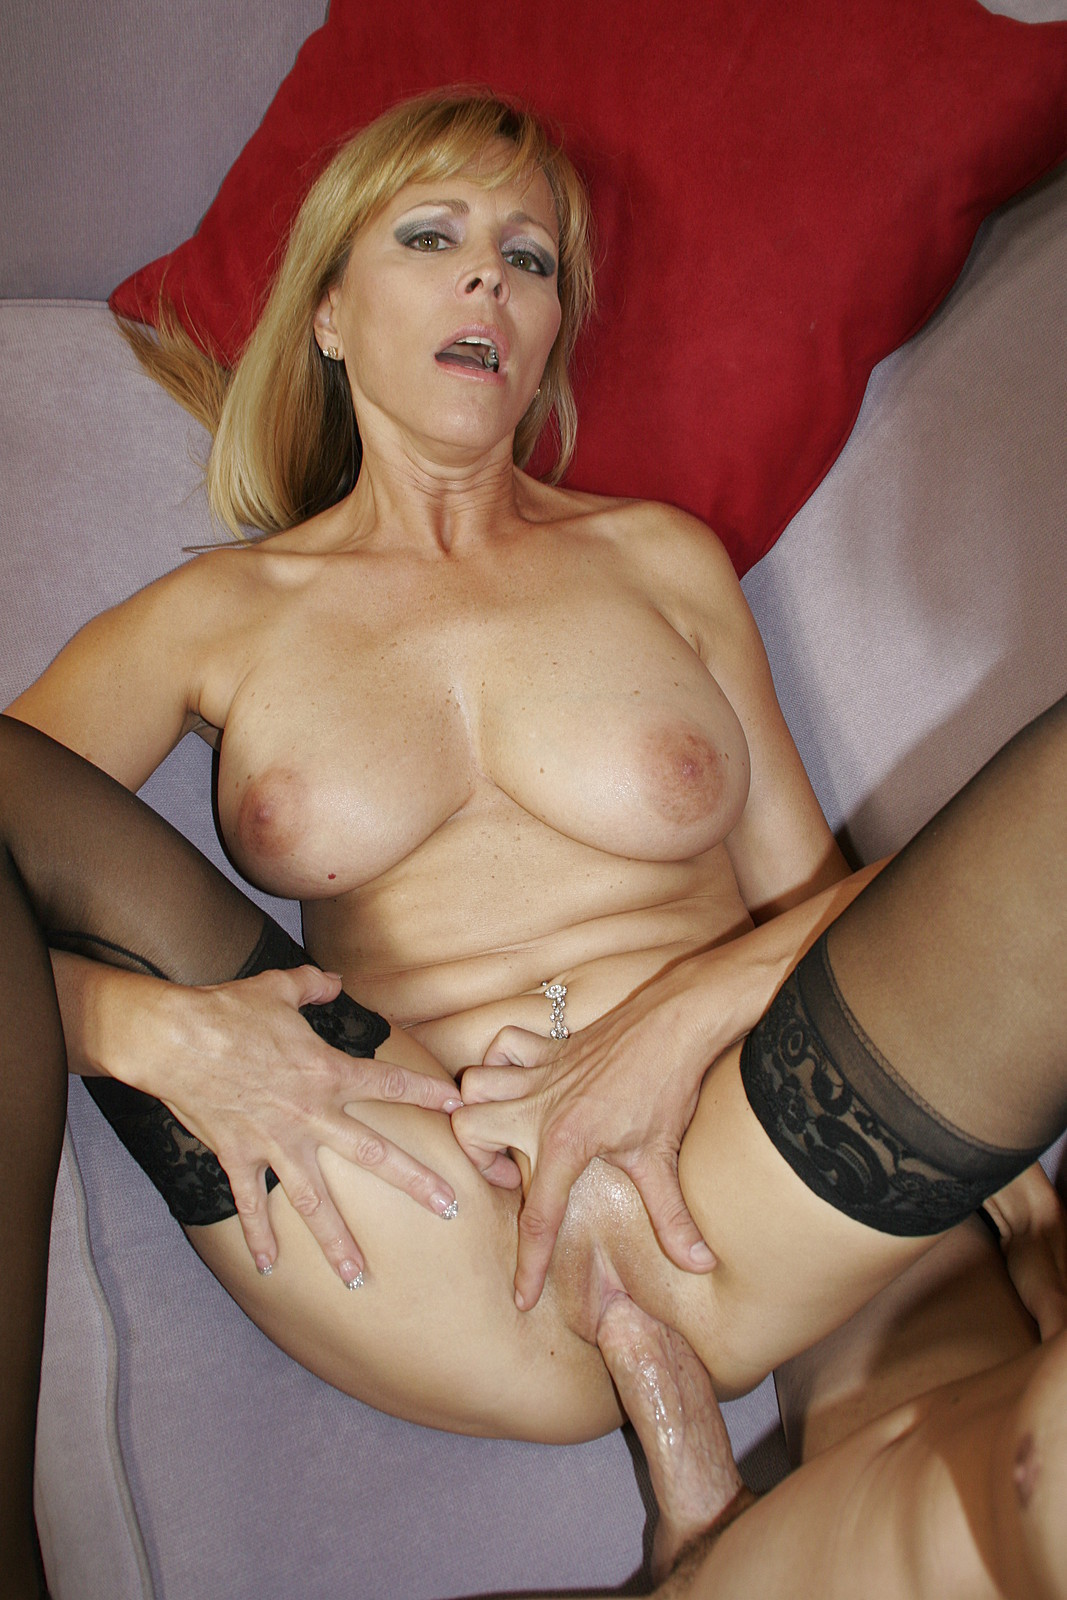 Cougar MILF Pictures